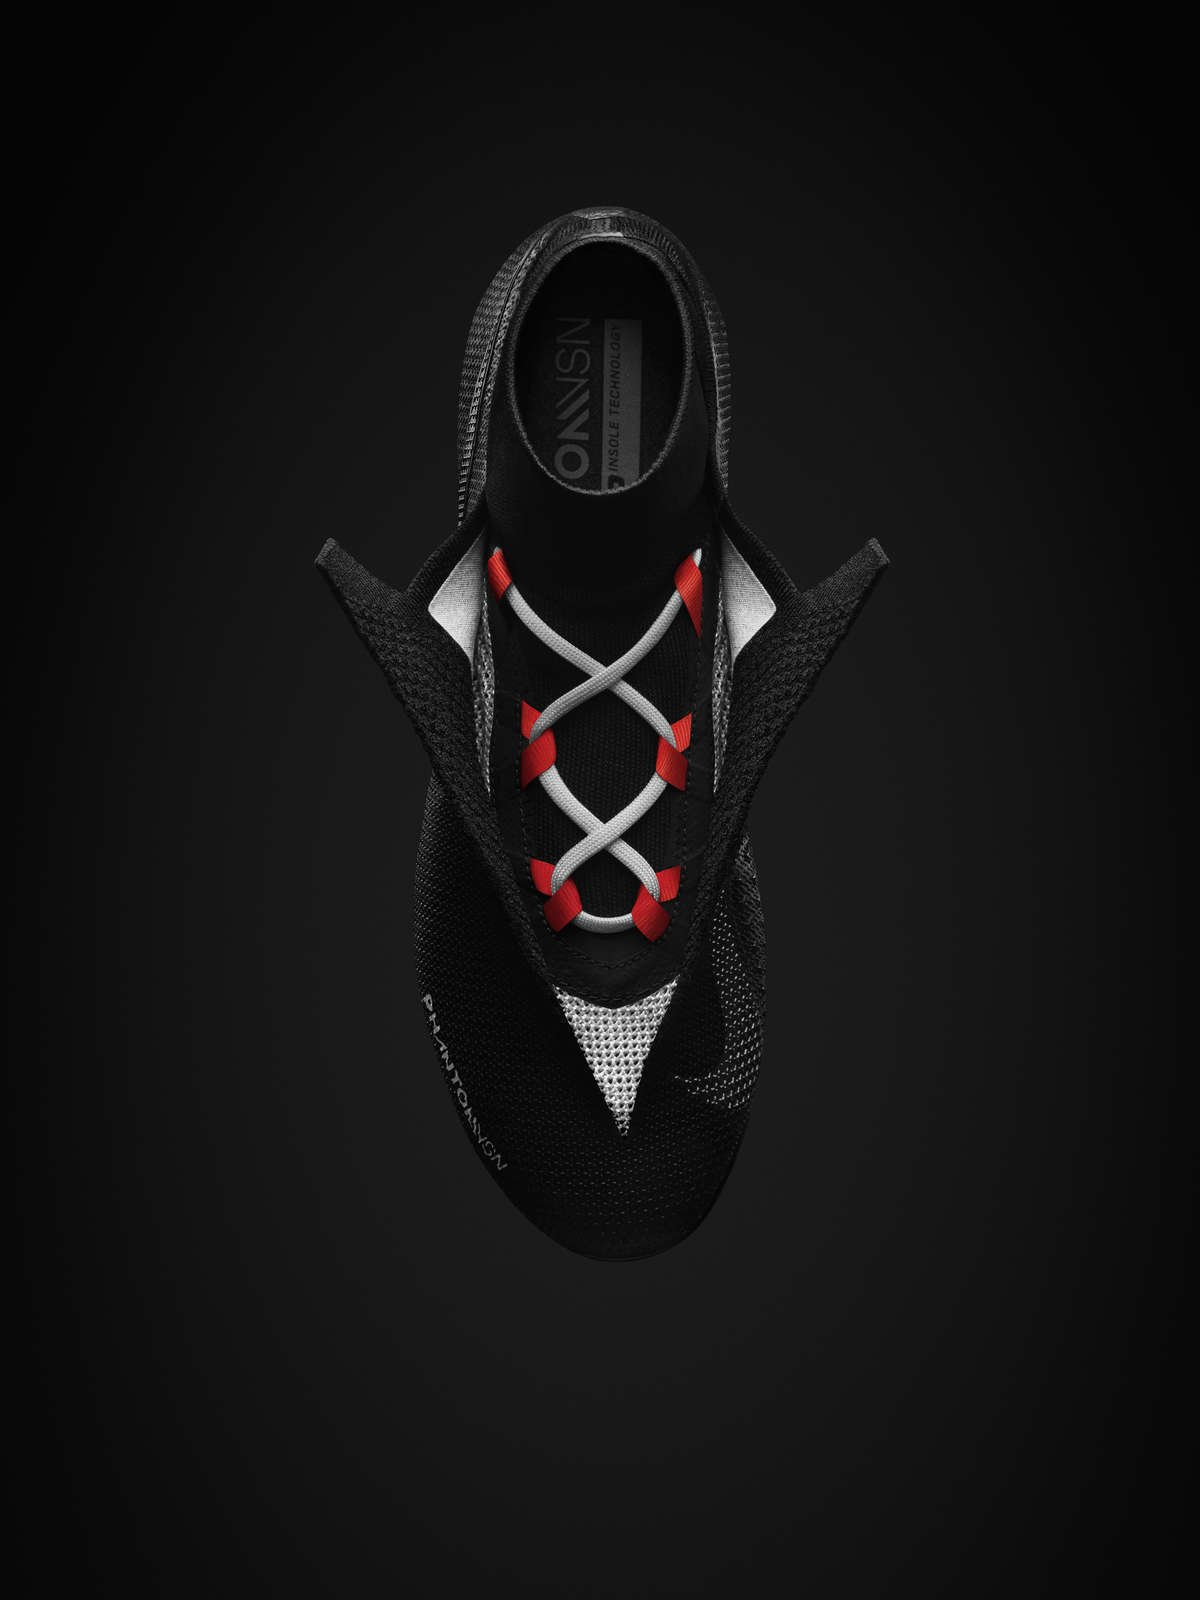 show ghost lace on nike phantom vision elite dynamic fit